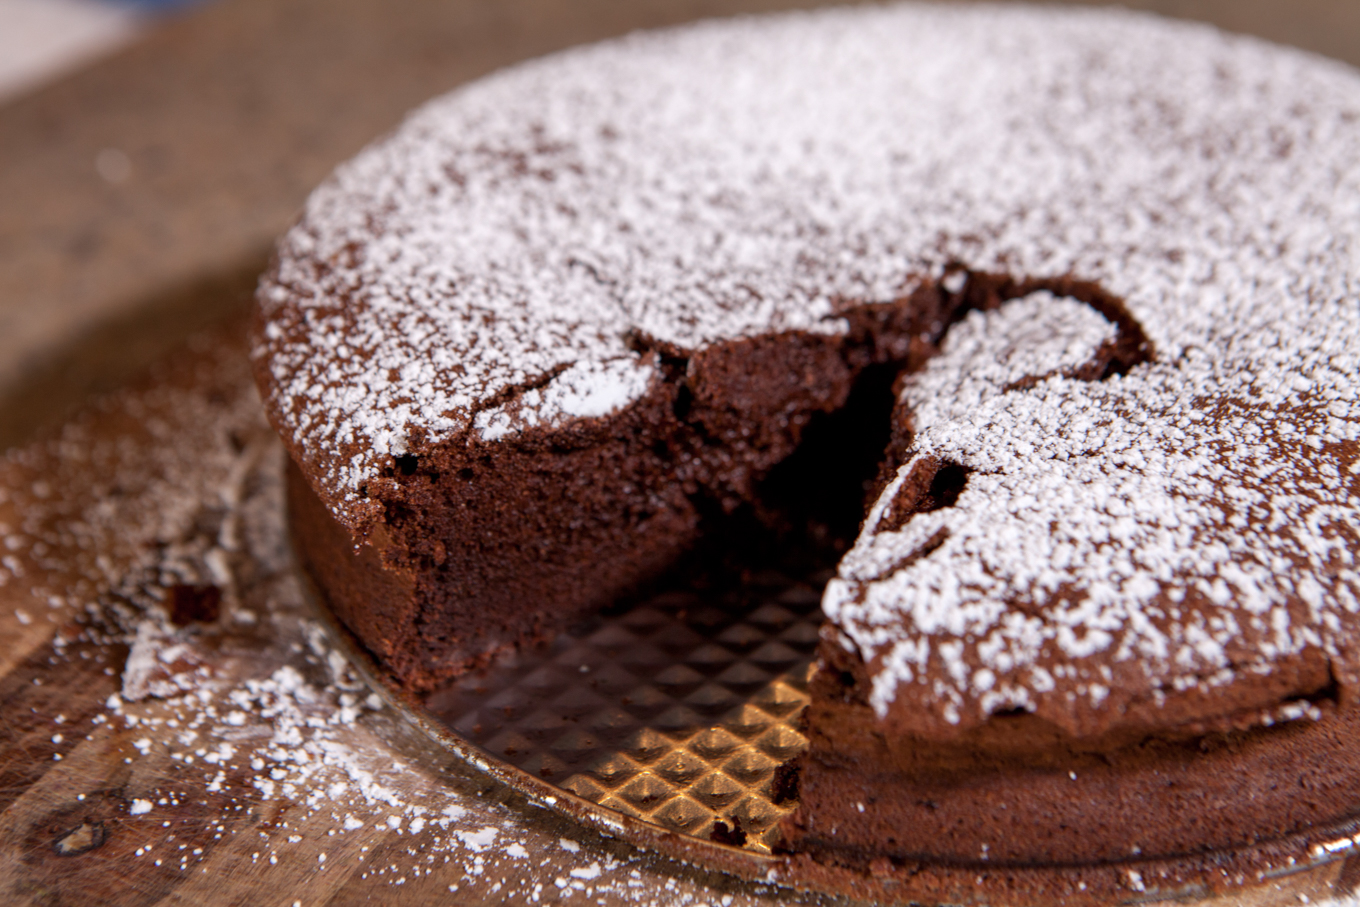 Flourless Chocolate Cake [Cooking Video] - Lake Shore Lady